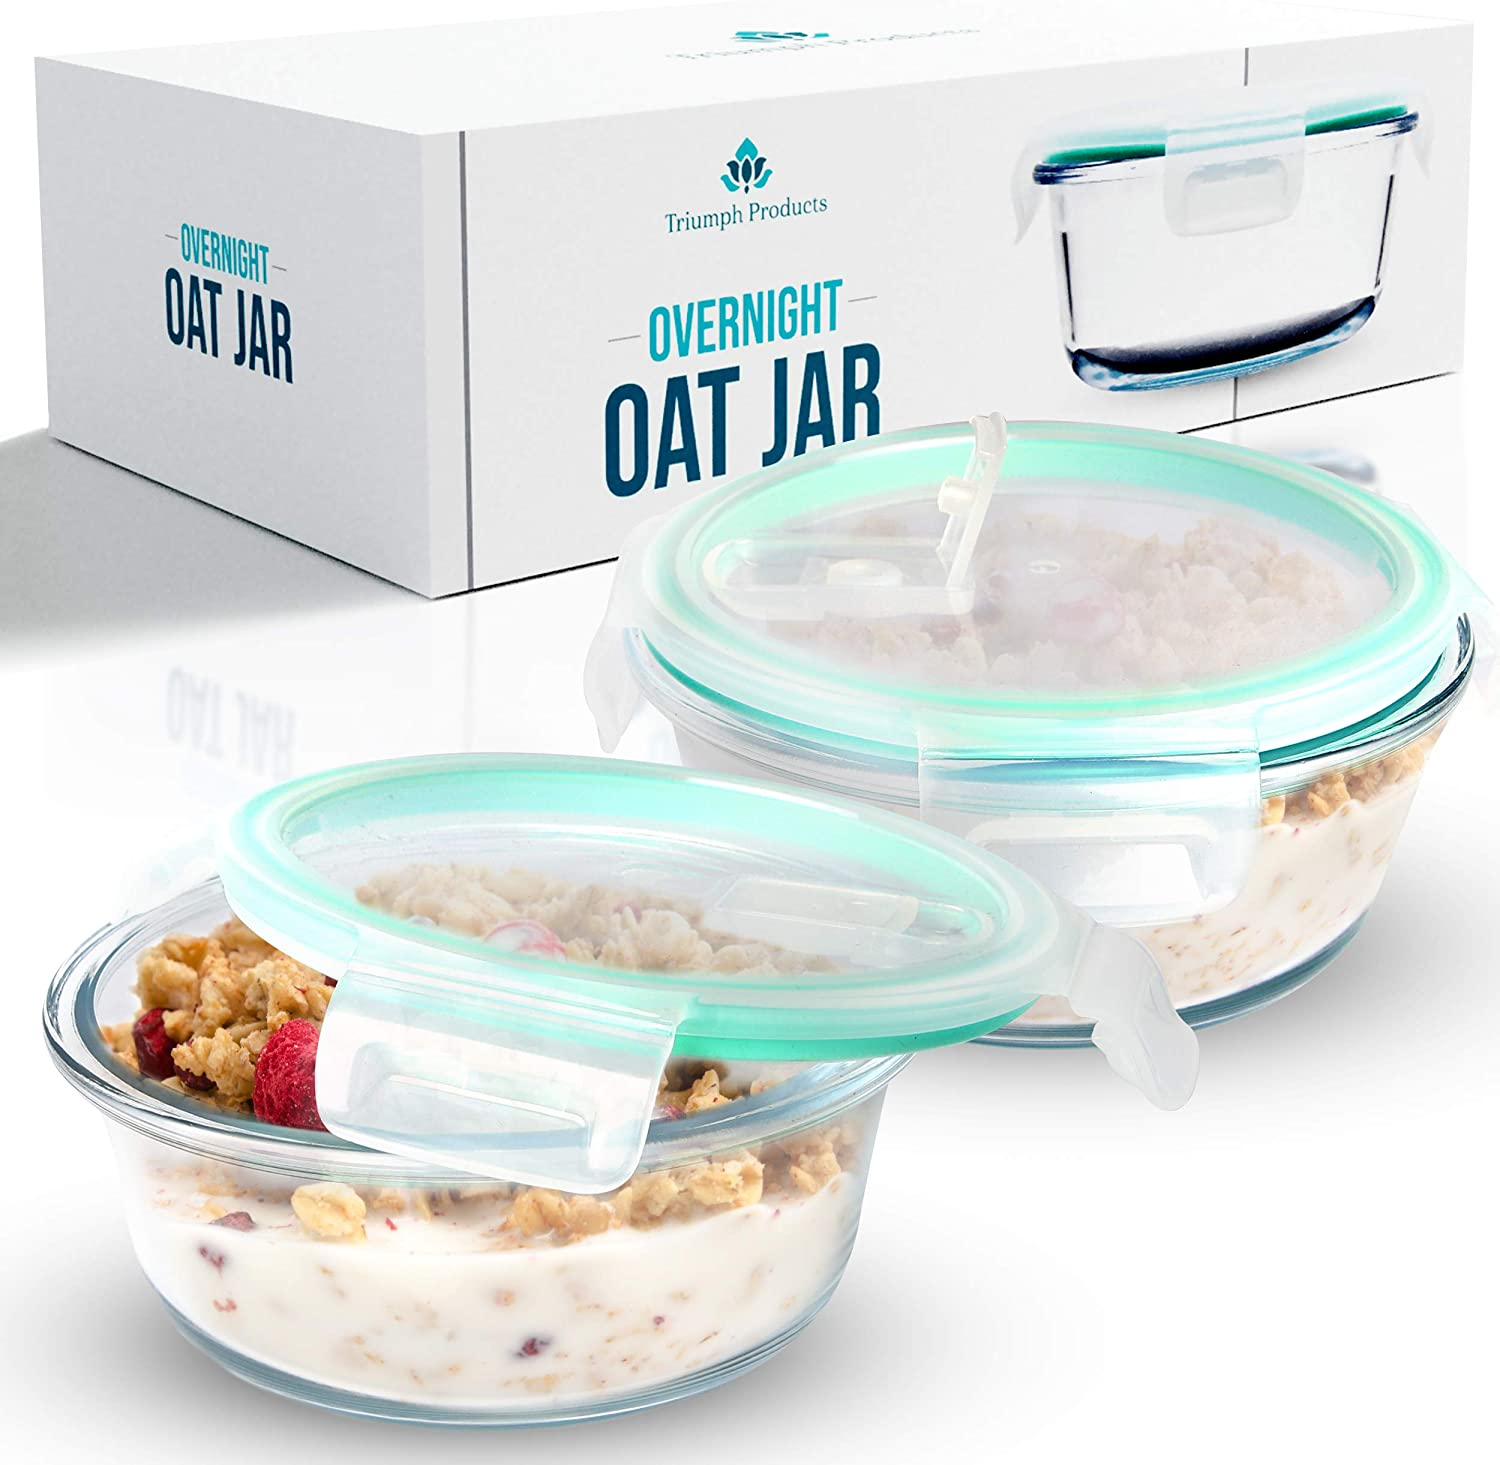 Overnight Oats Container Jar (2-Piece Set) - 18.5 oz Glass Containers with Lids   Meal Prep Breakfast Containers   Portable Cereal and Milk Container   Oatmeal Jar